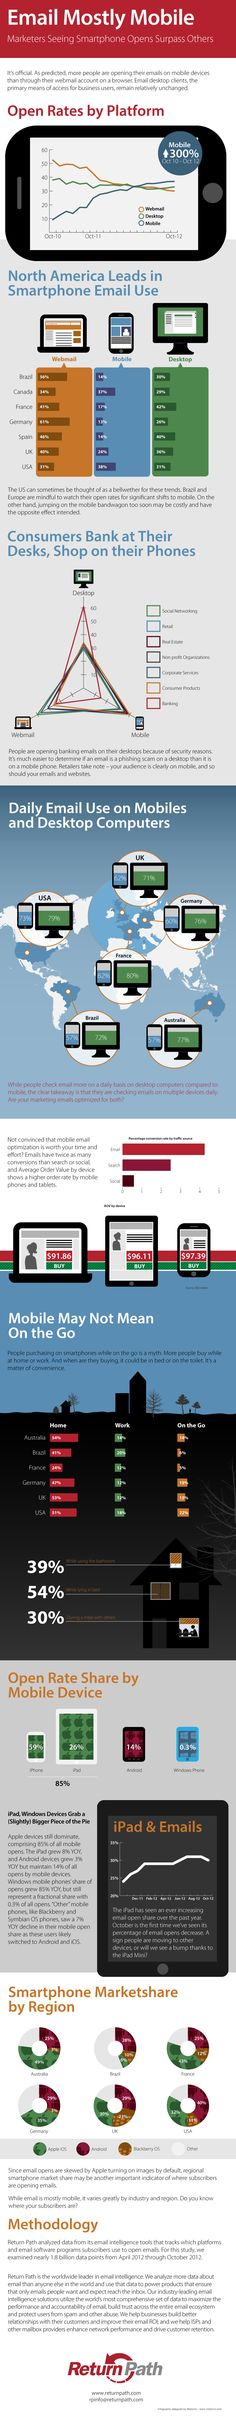 #Email Mostly #Mobile